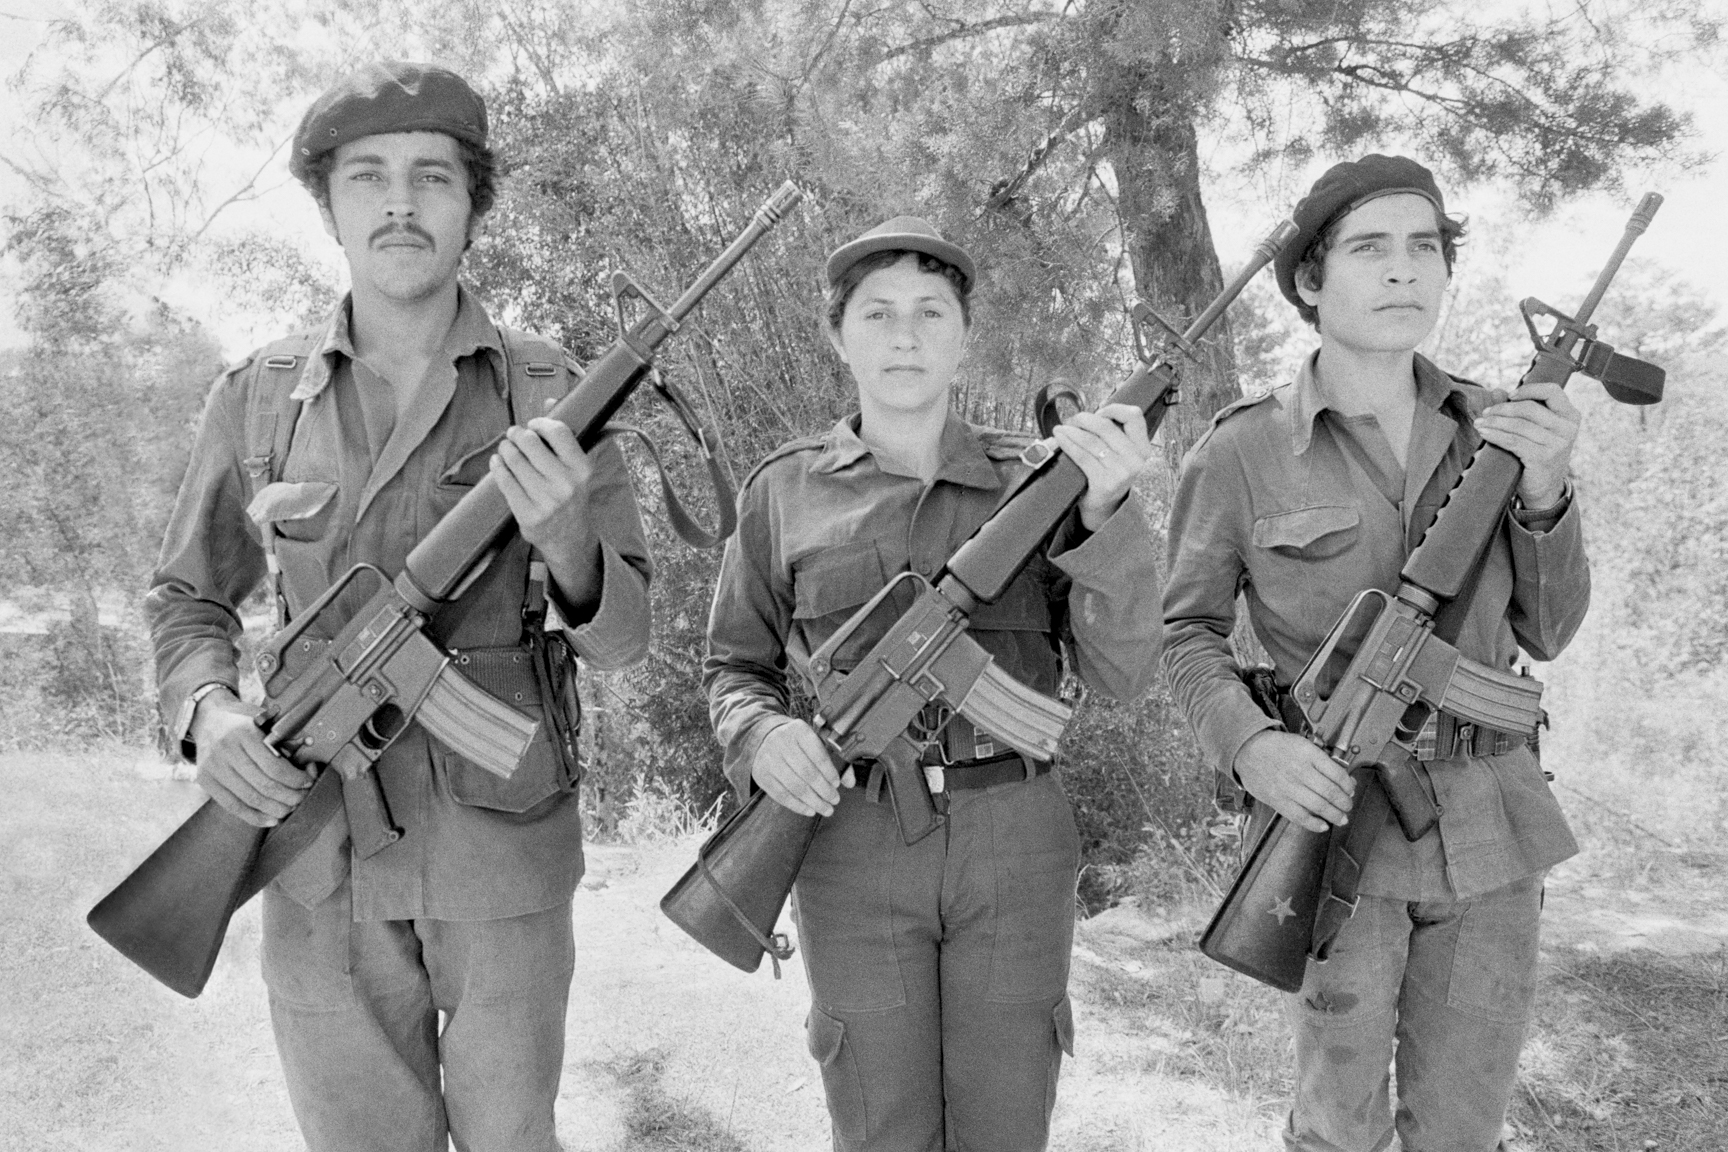 Three leftist guerrillas from the Fuerzas Populares de Liberación, FPL, show off their U.S. made M-16 rifles at a demonstration of force rally February 6, 1983 in La Palma, El Salvador. Weapons used by Salvadoran leftist guerrillas were purchased through black market arms dealers or captured from Salvadoran army soldiers who had received them from the U.S. Pentagon.